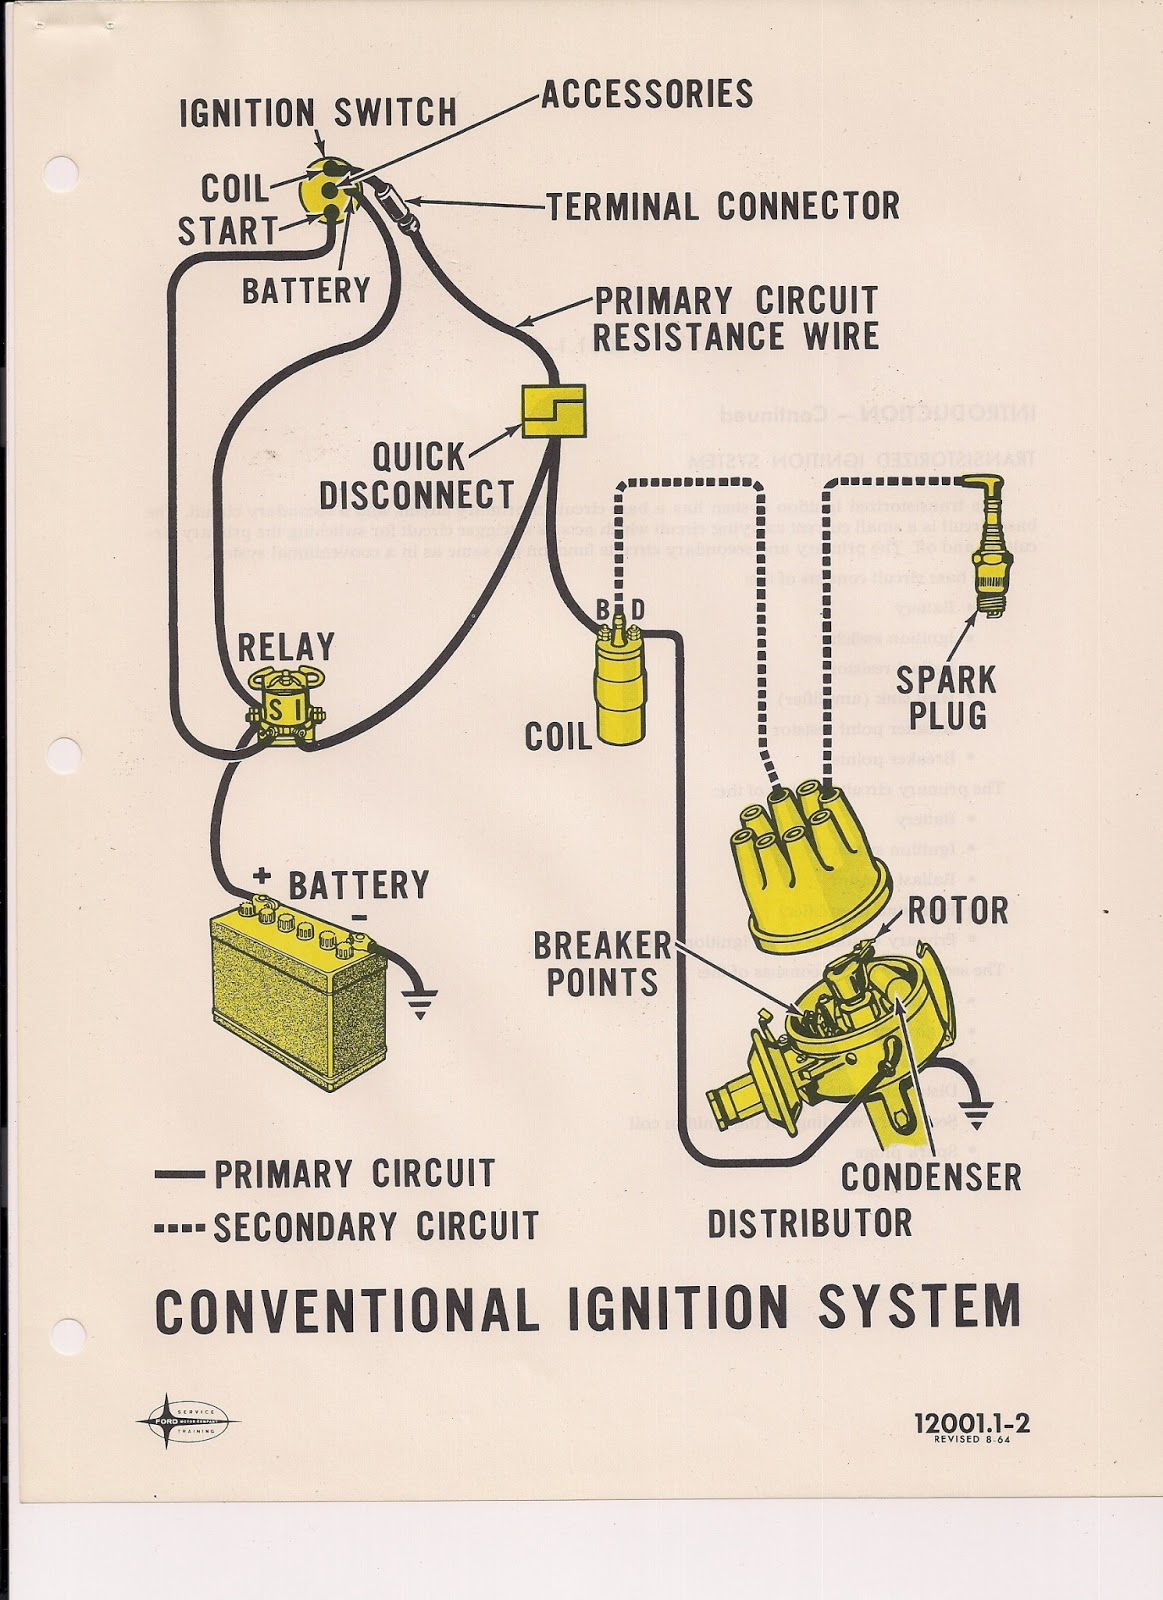 Ignition+1 the care and feeding of ponies mustang ignition system 1965 and 1966 1968 mustang ignition wiring diagram at bakdesigns.co